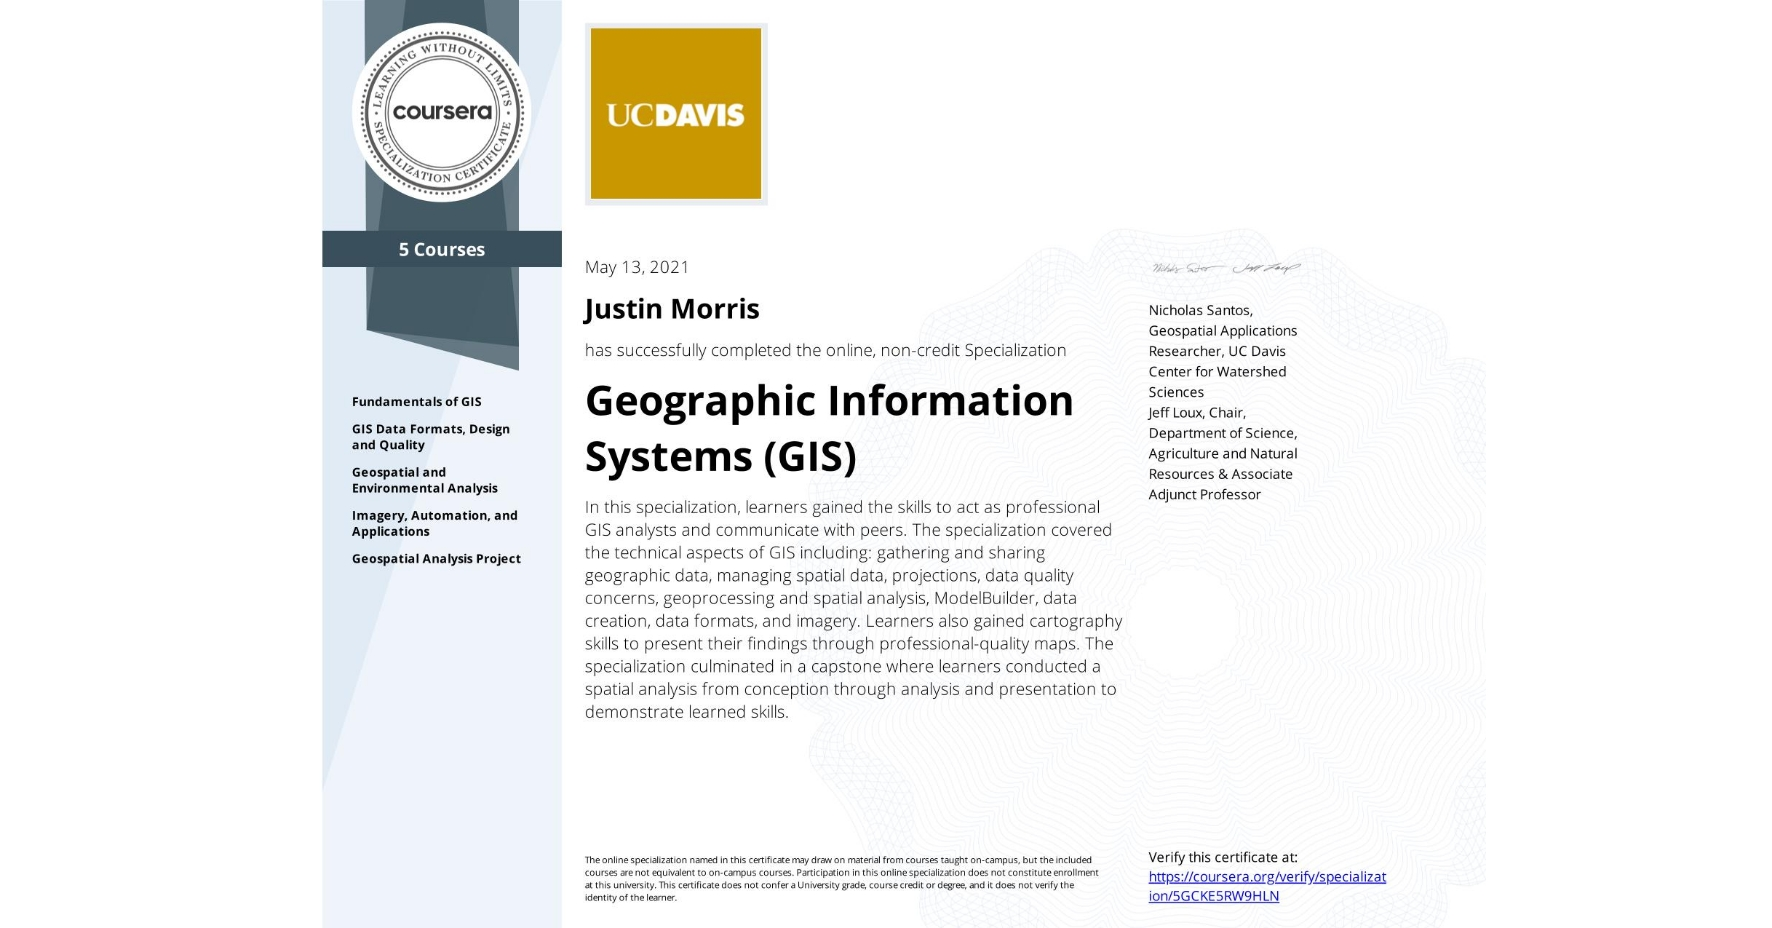 View certificate for Justin Morris, Geographic Information Systems  (GIS), offered through Coursera. In this specialization, learners gained the skills to act as professional GIS analysts and communicate with peers. The specialization covered the technical aspects of GIS including: gathering and sharing geographic data, managing spatial data, projections, data quality concerns, geoprocessing and spatial analysis, ModelBuilder, data creation, data formats, and imagery. Learners also gained cartography skills to present their findings through professional-quality maps. The specialization culminated in a capstone where learners conducted a spatial analysis from conception through analysis and presentation to demonstrate learned skills.